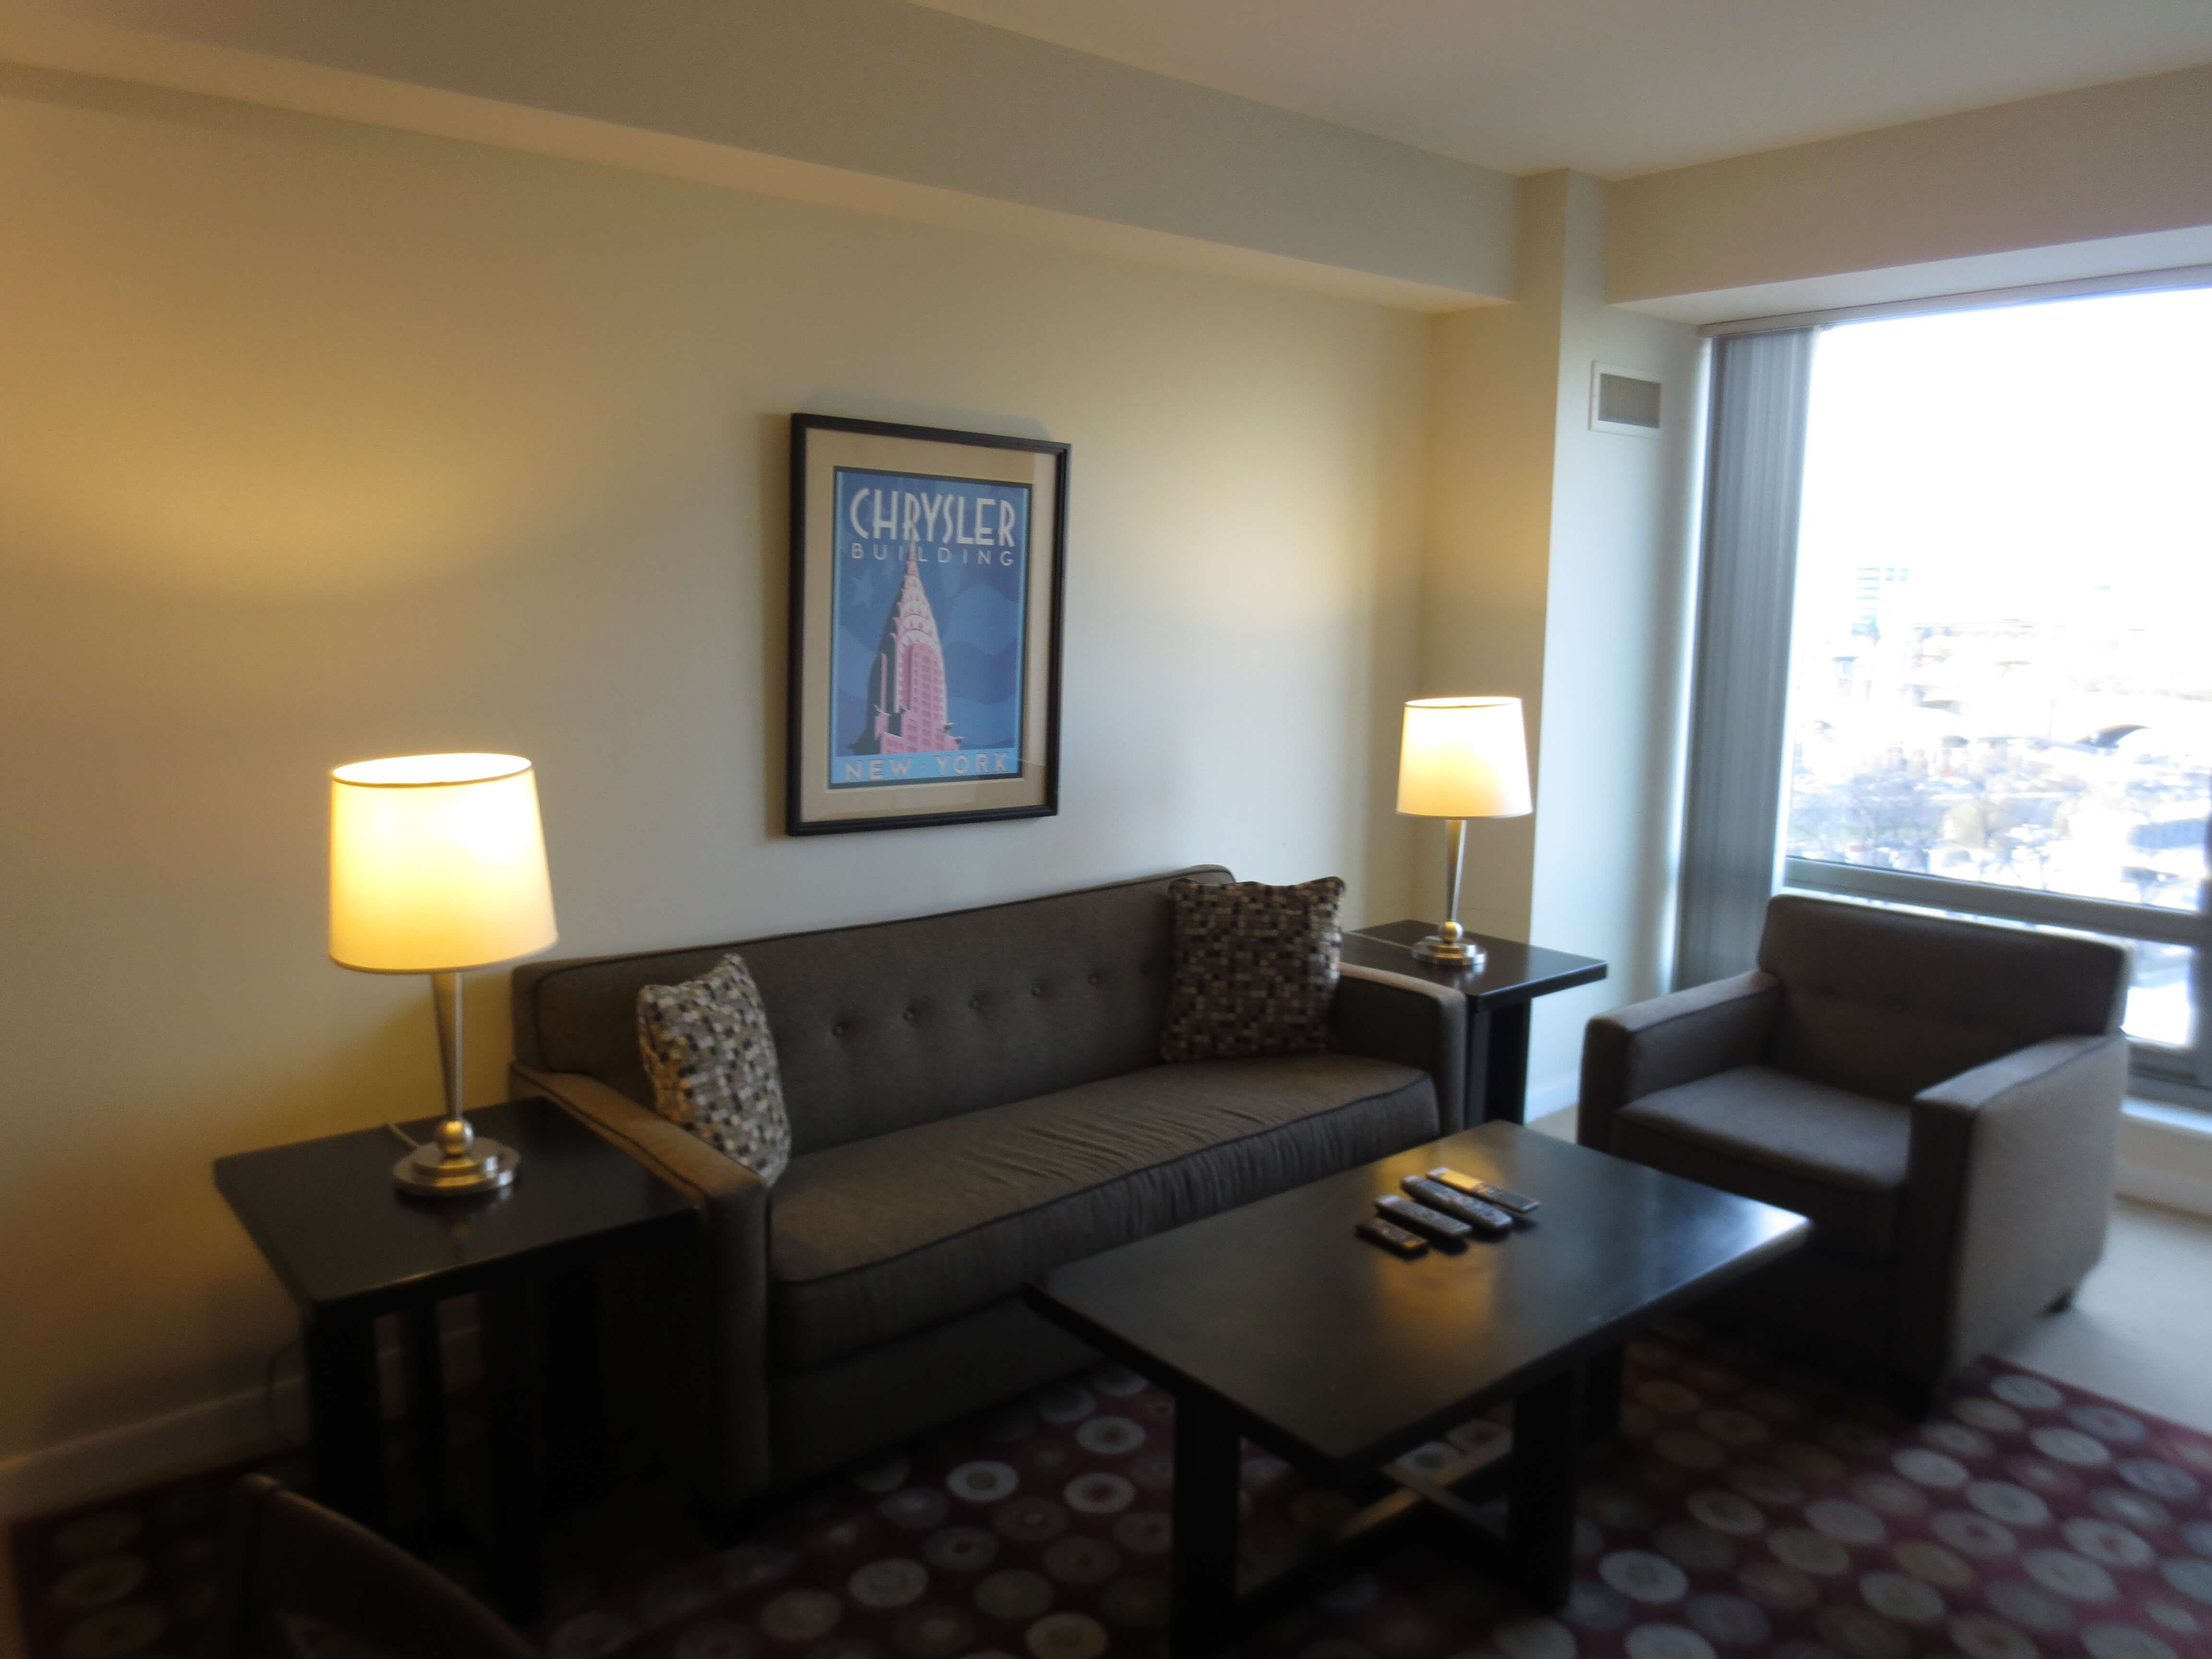 furnished 2 bedroom apartment for rent in beacon hill boston area